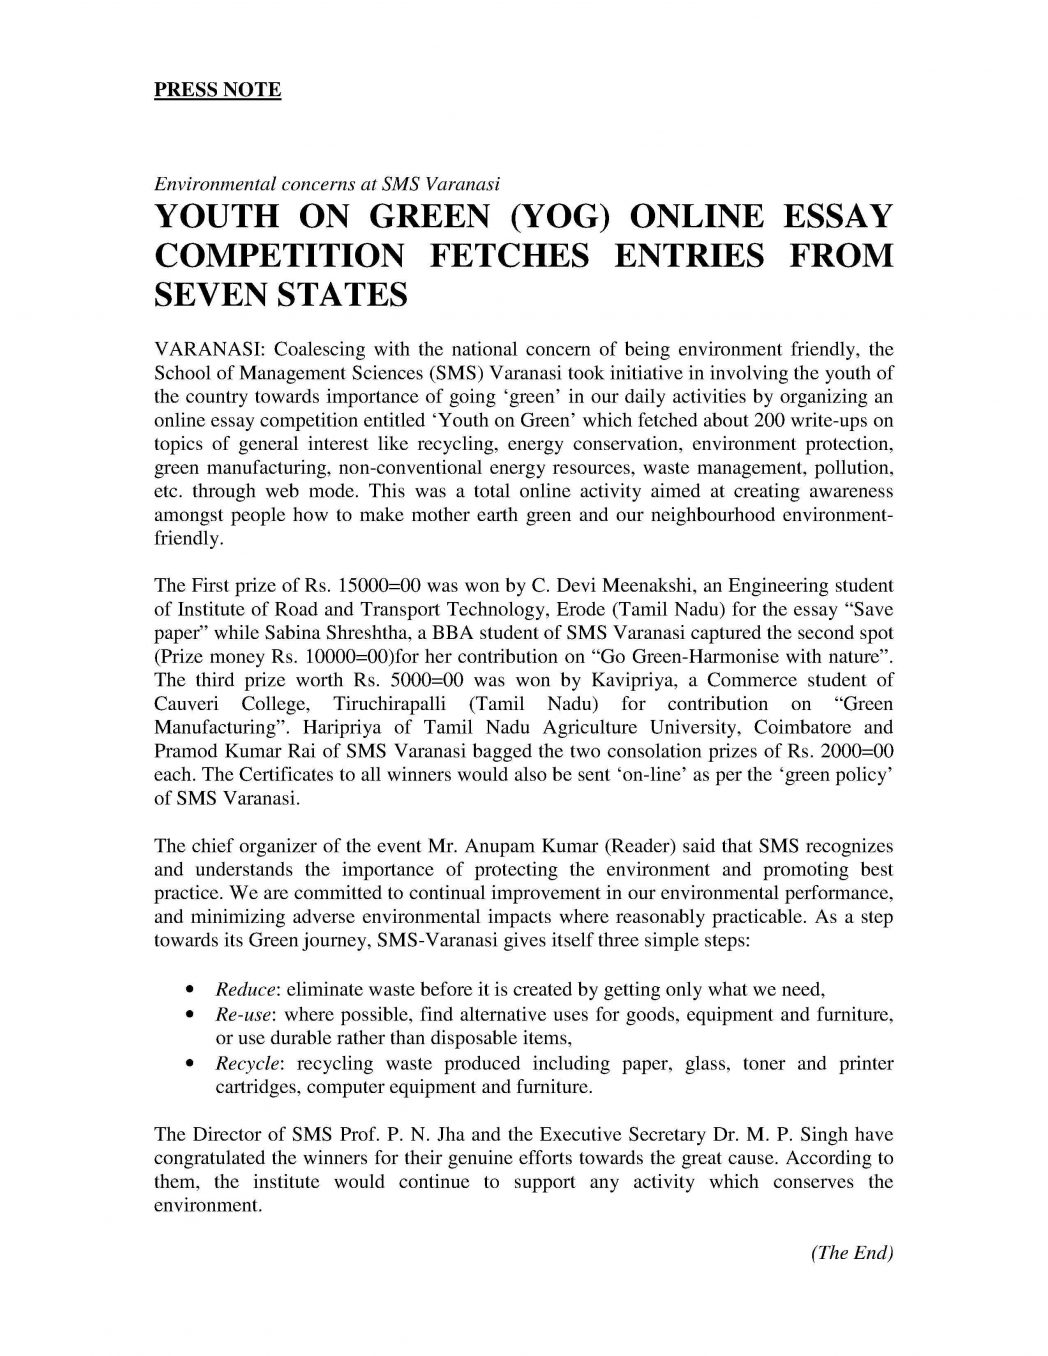 020 Best Essays For College Essay On Good Habits How Tot Application Online Yog Press Re About Yourself Examples Your Background Failure Prompt Off Hook 1048x1356 Example Amazing To Start An With A Definition Rhetorical Question Life Full